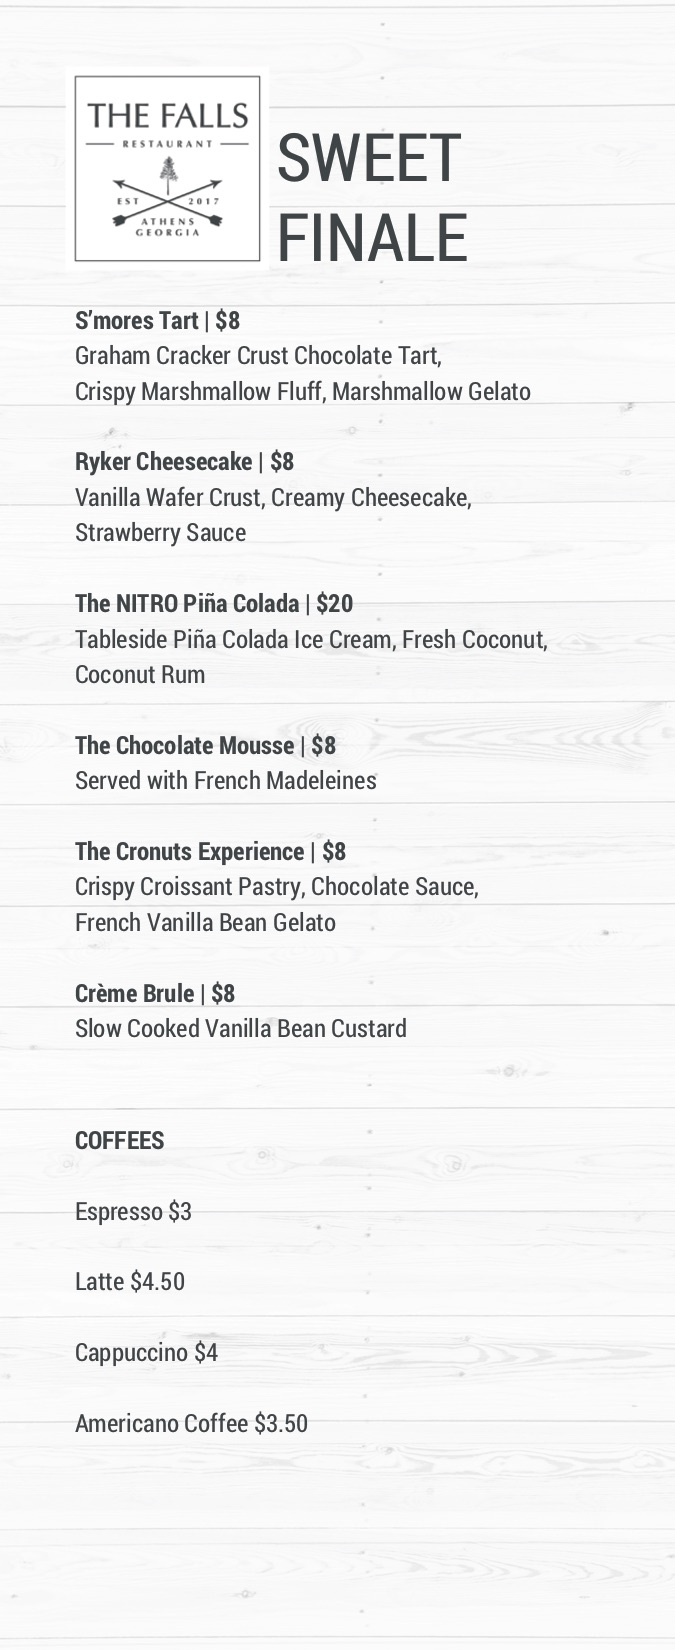 FallsDessertMenu 1- Revised 4.26.18.jpg